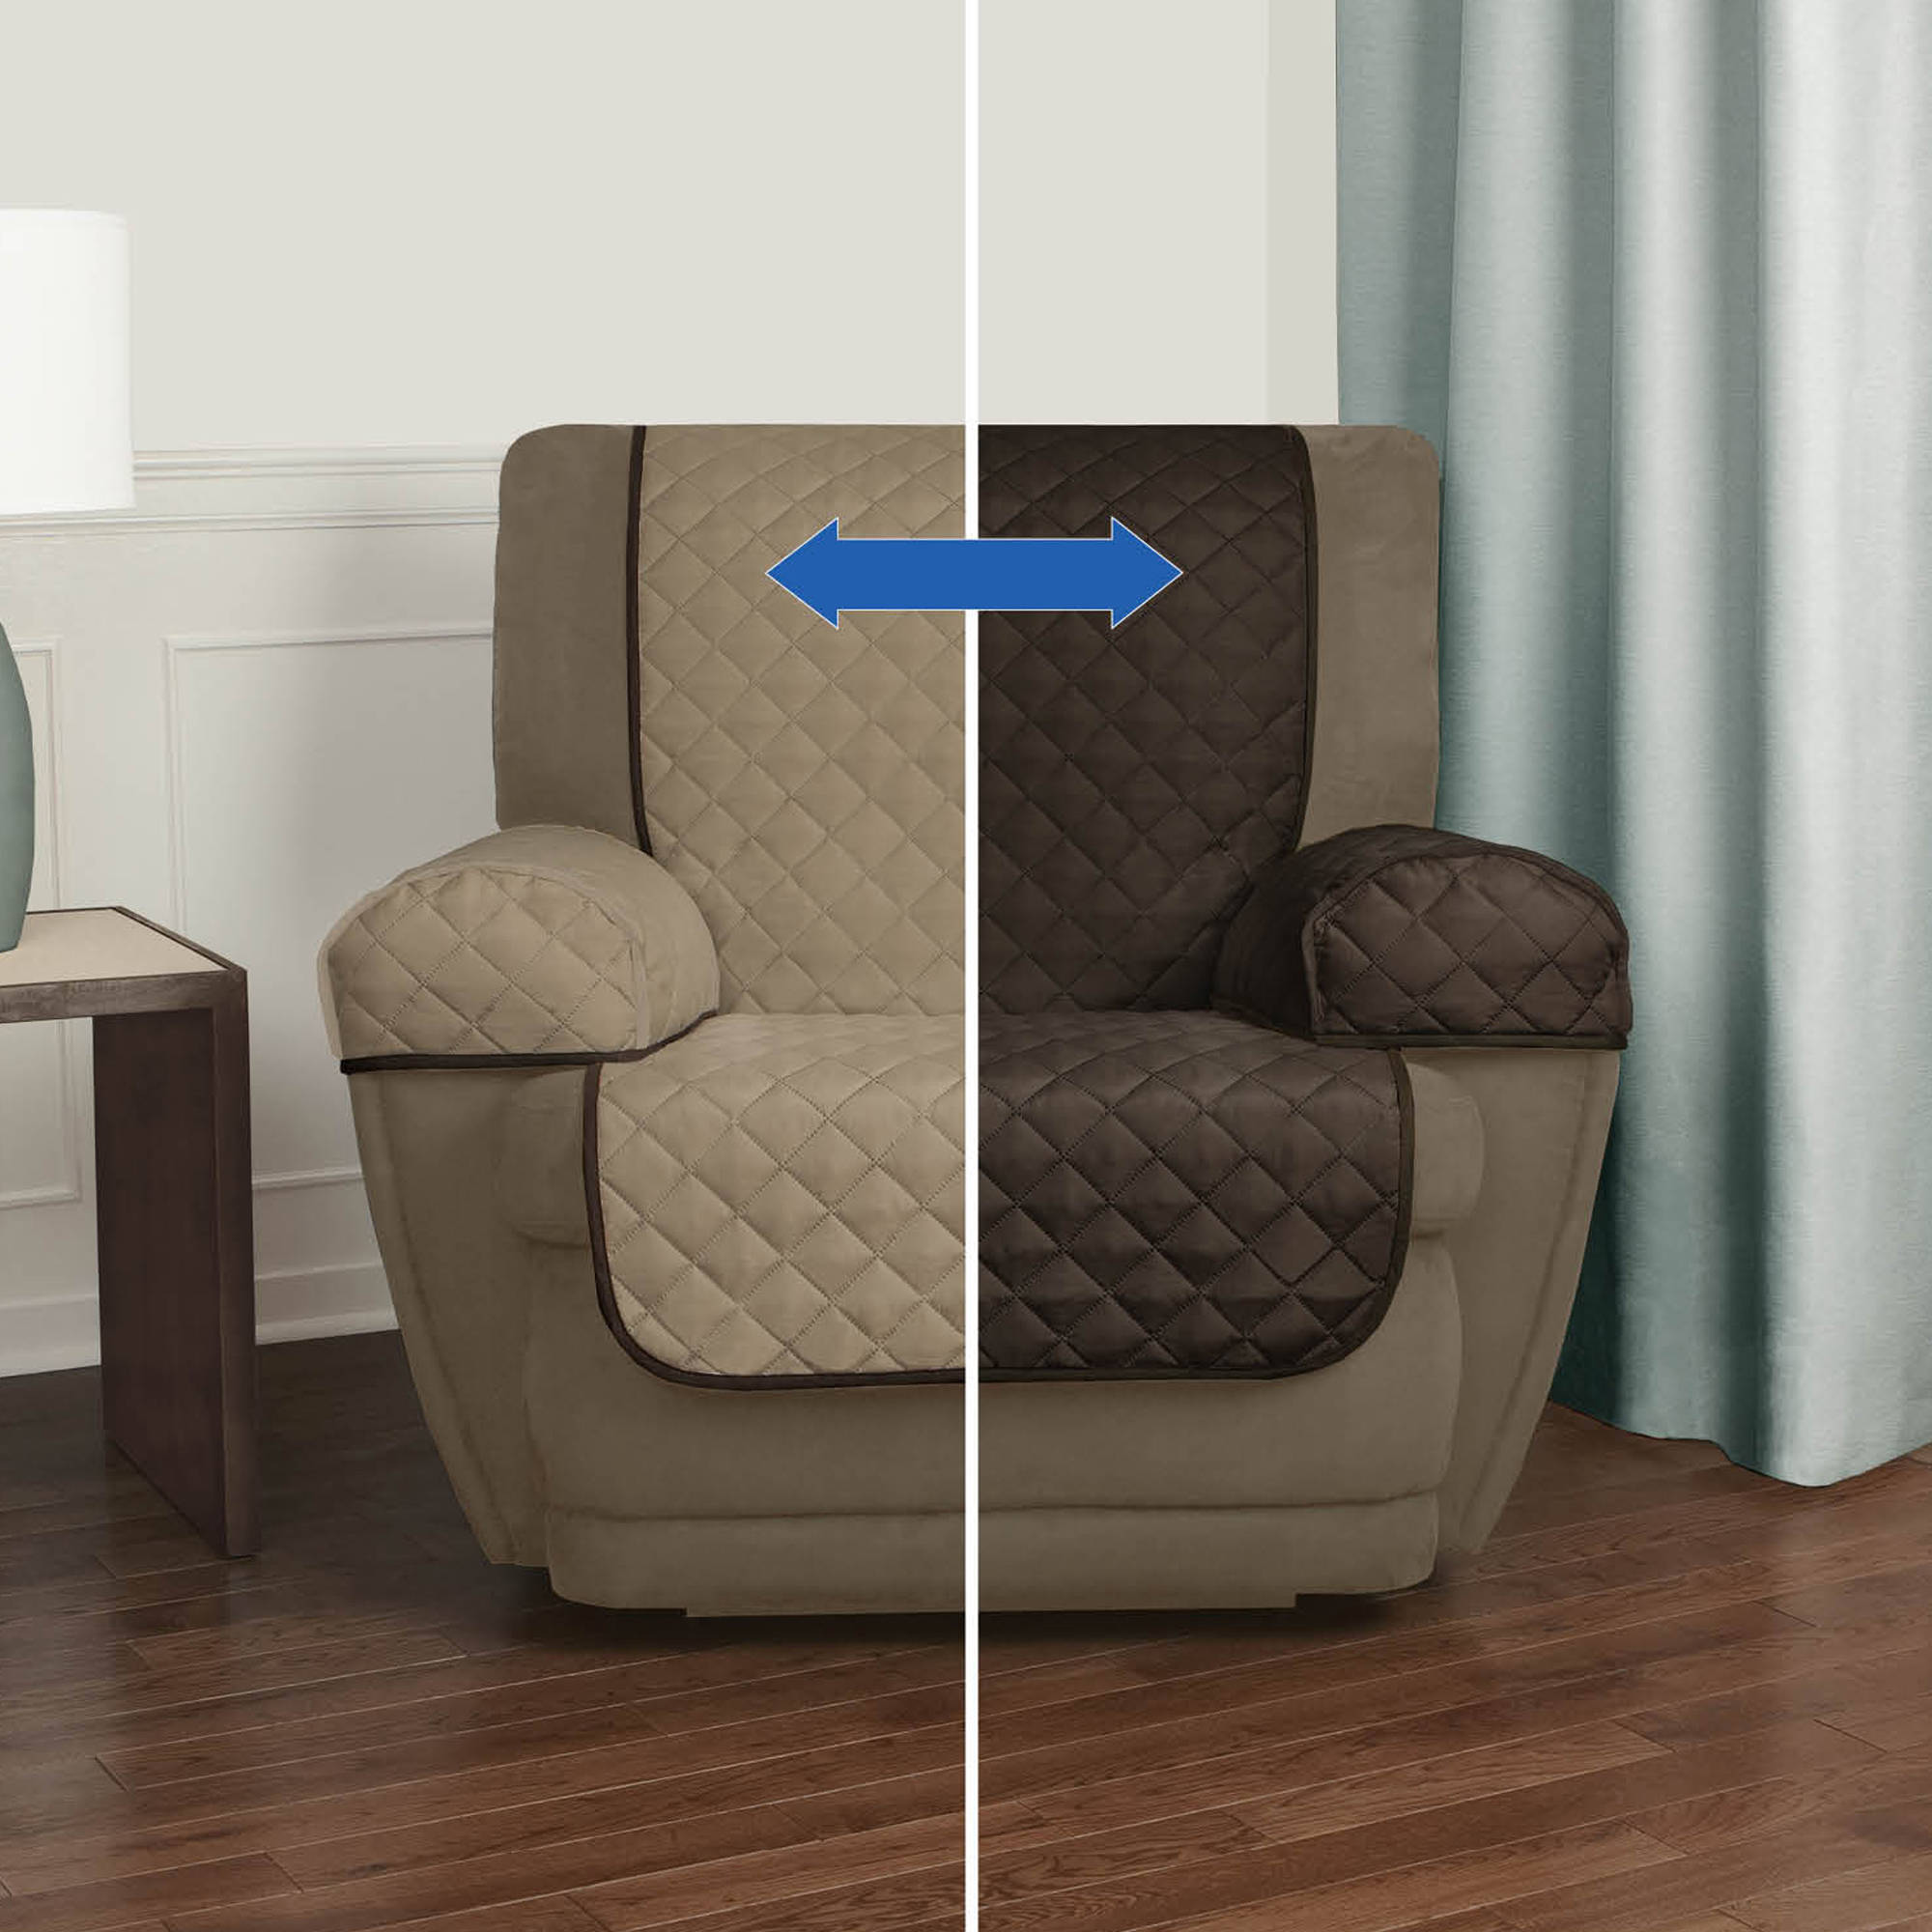 Mainstays Reversible Faux Suede to Microfiber 3 Piece Recliner Chair Furniture Cover Protector, Brown / Tan